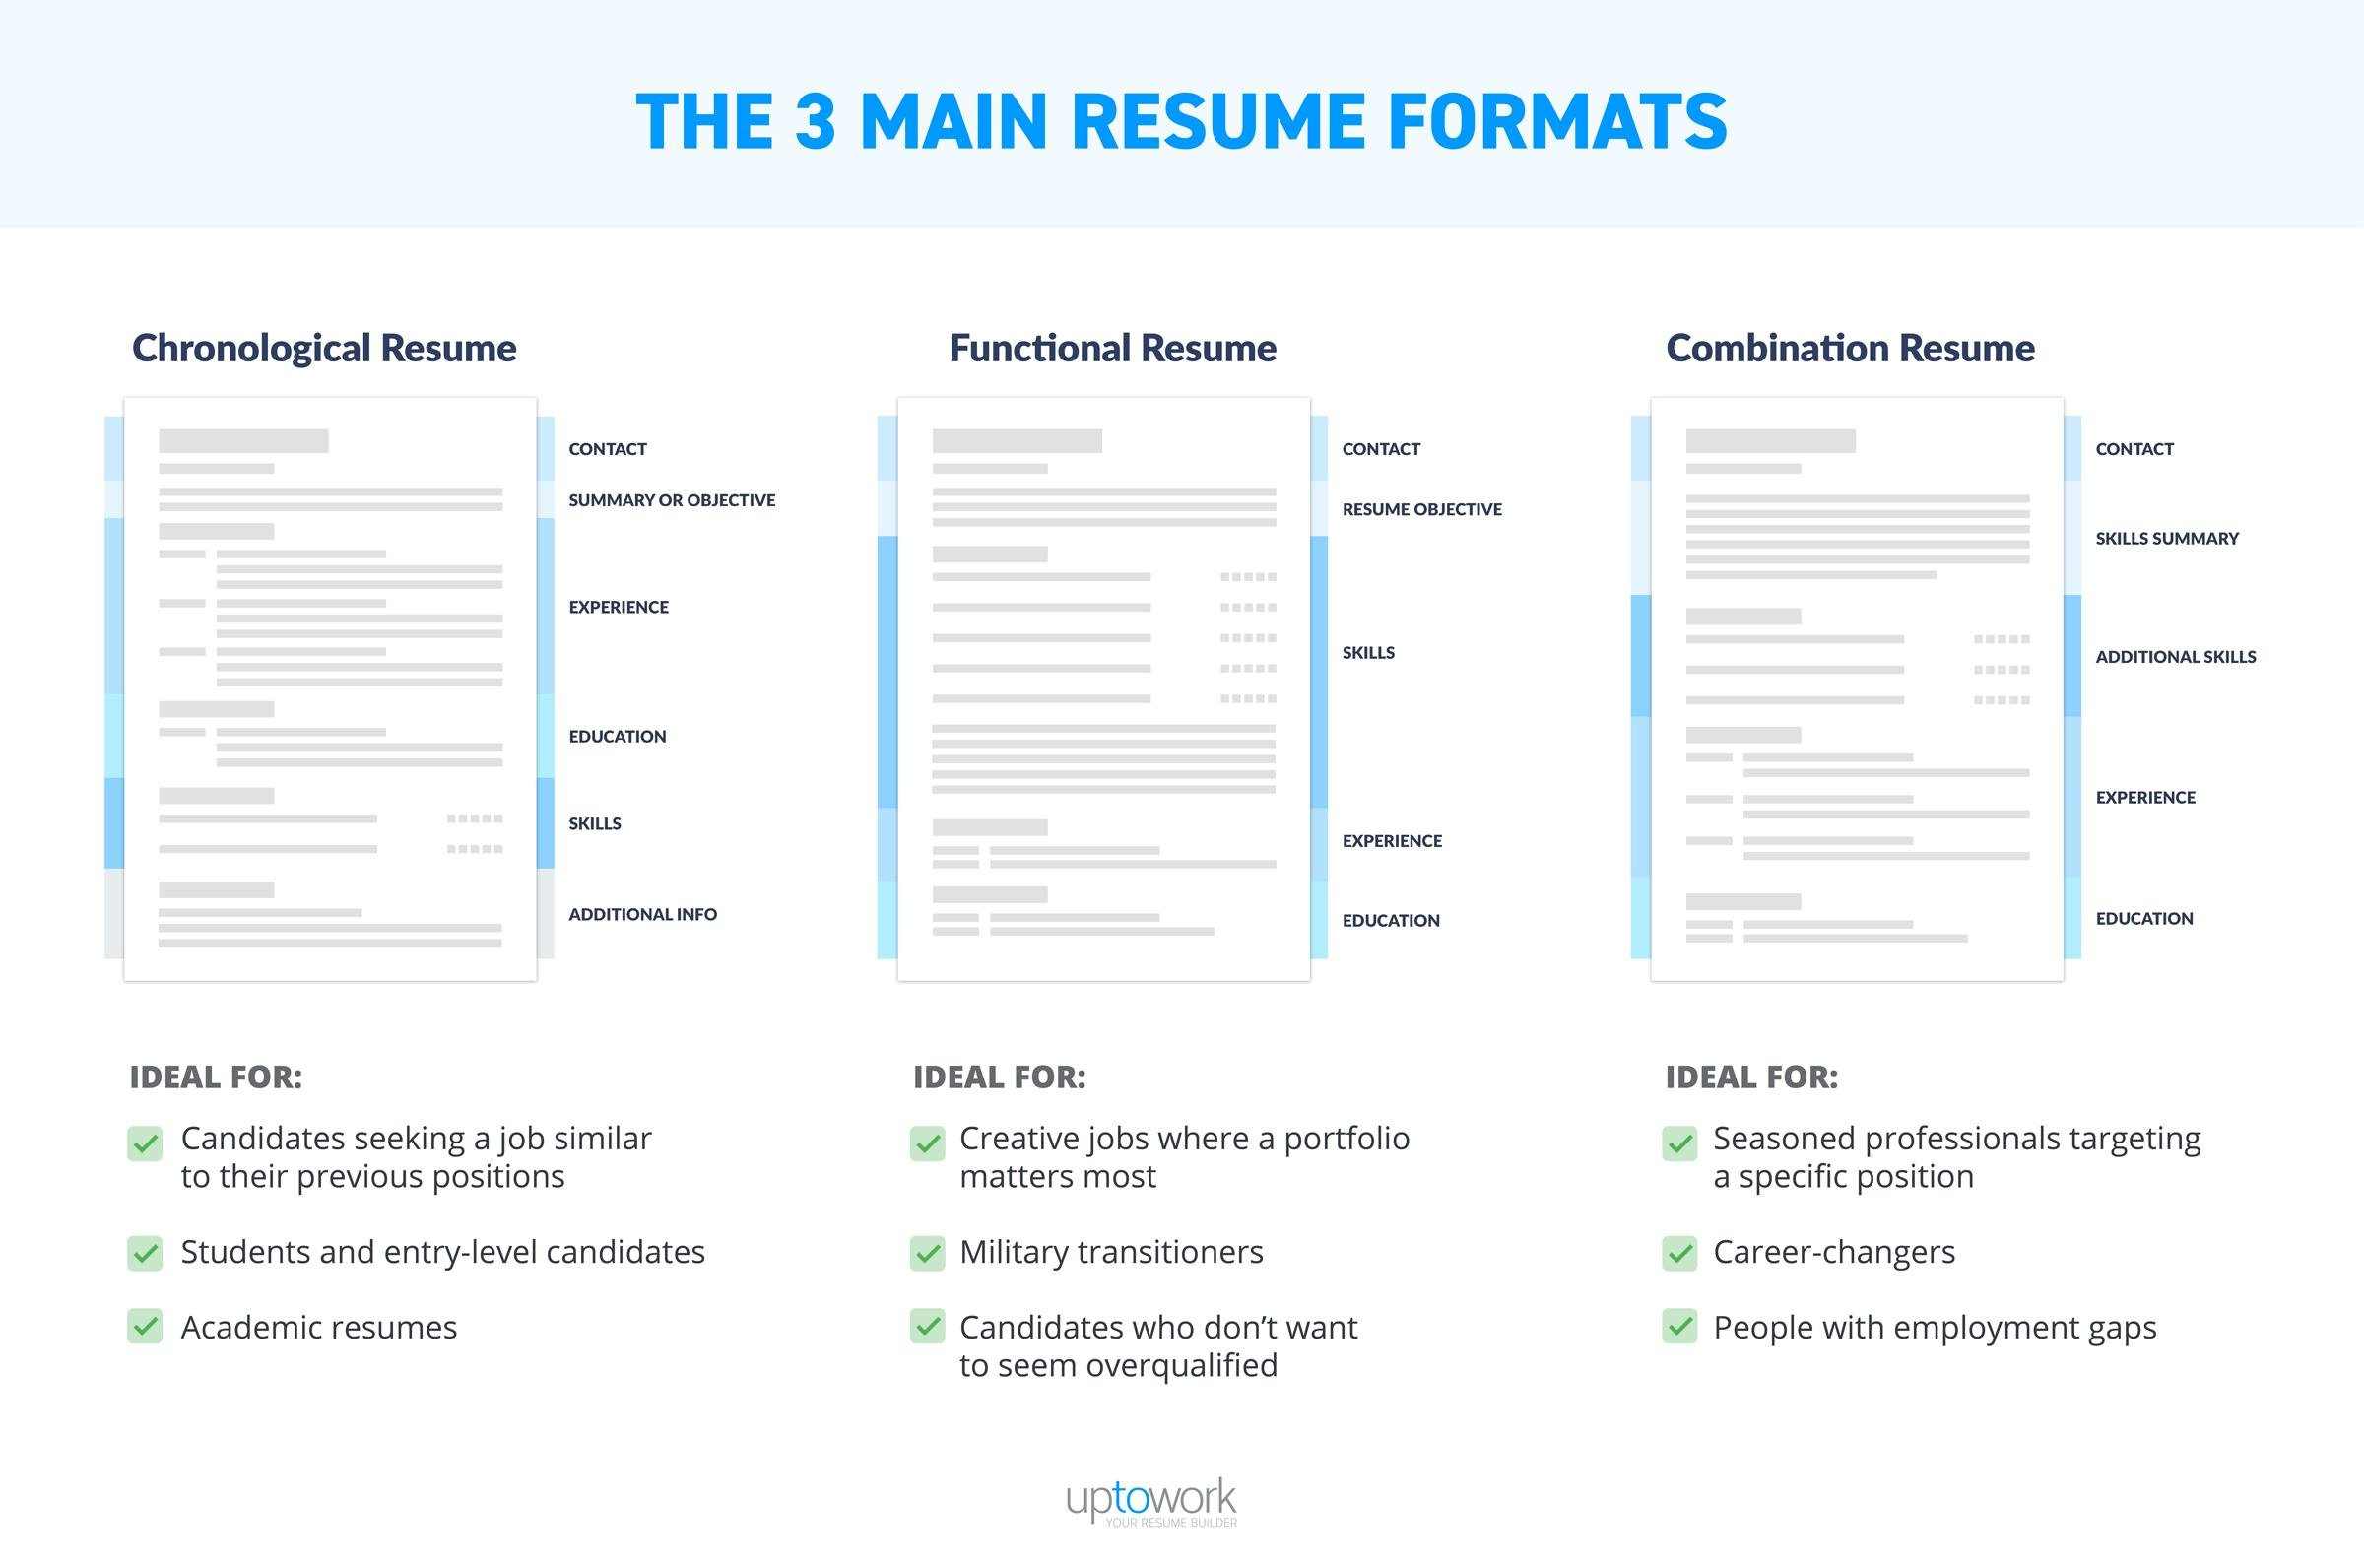 resume formats chronological functional combination - Job Resume Formats